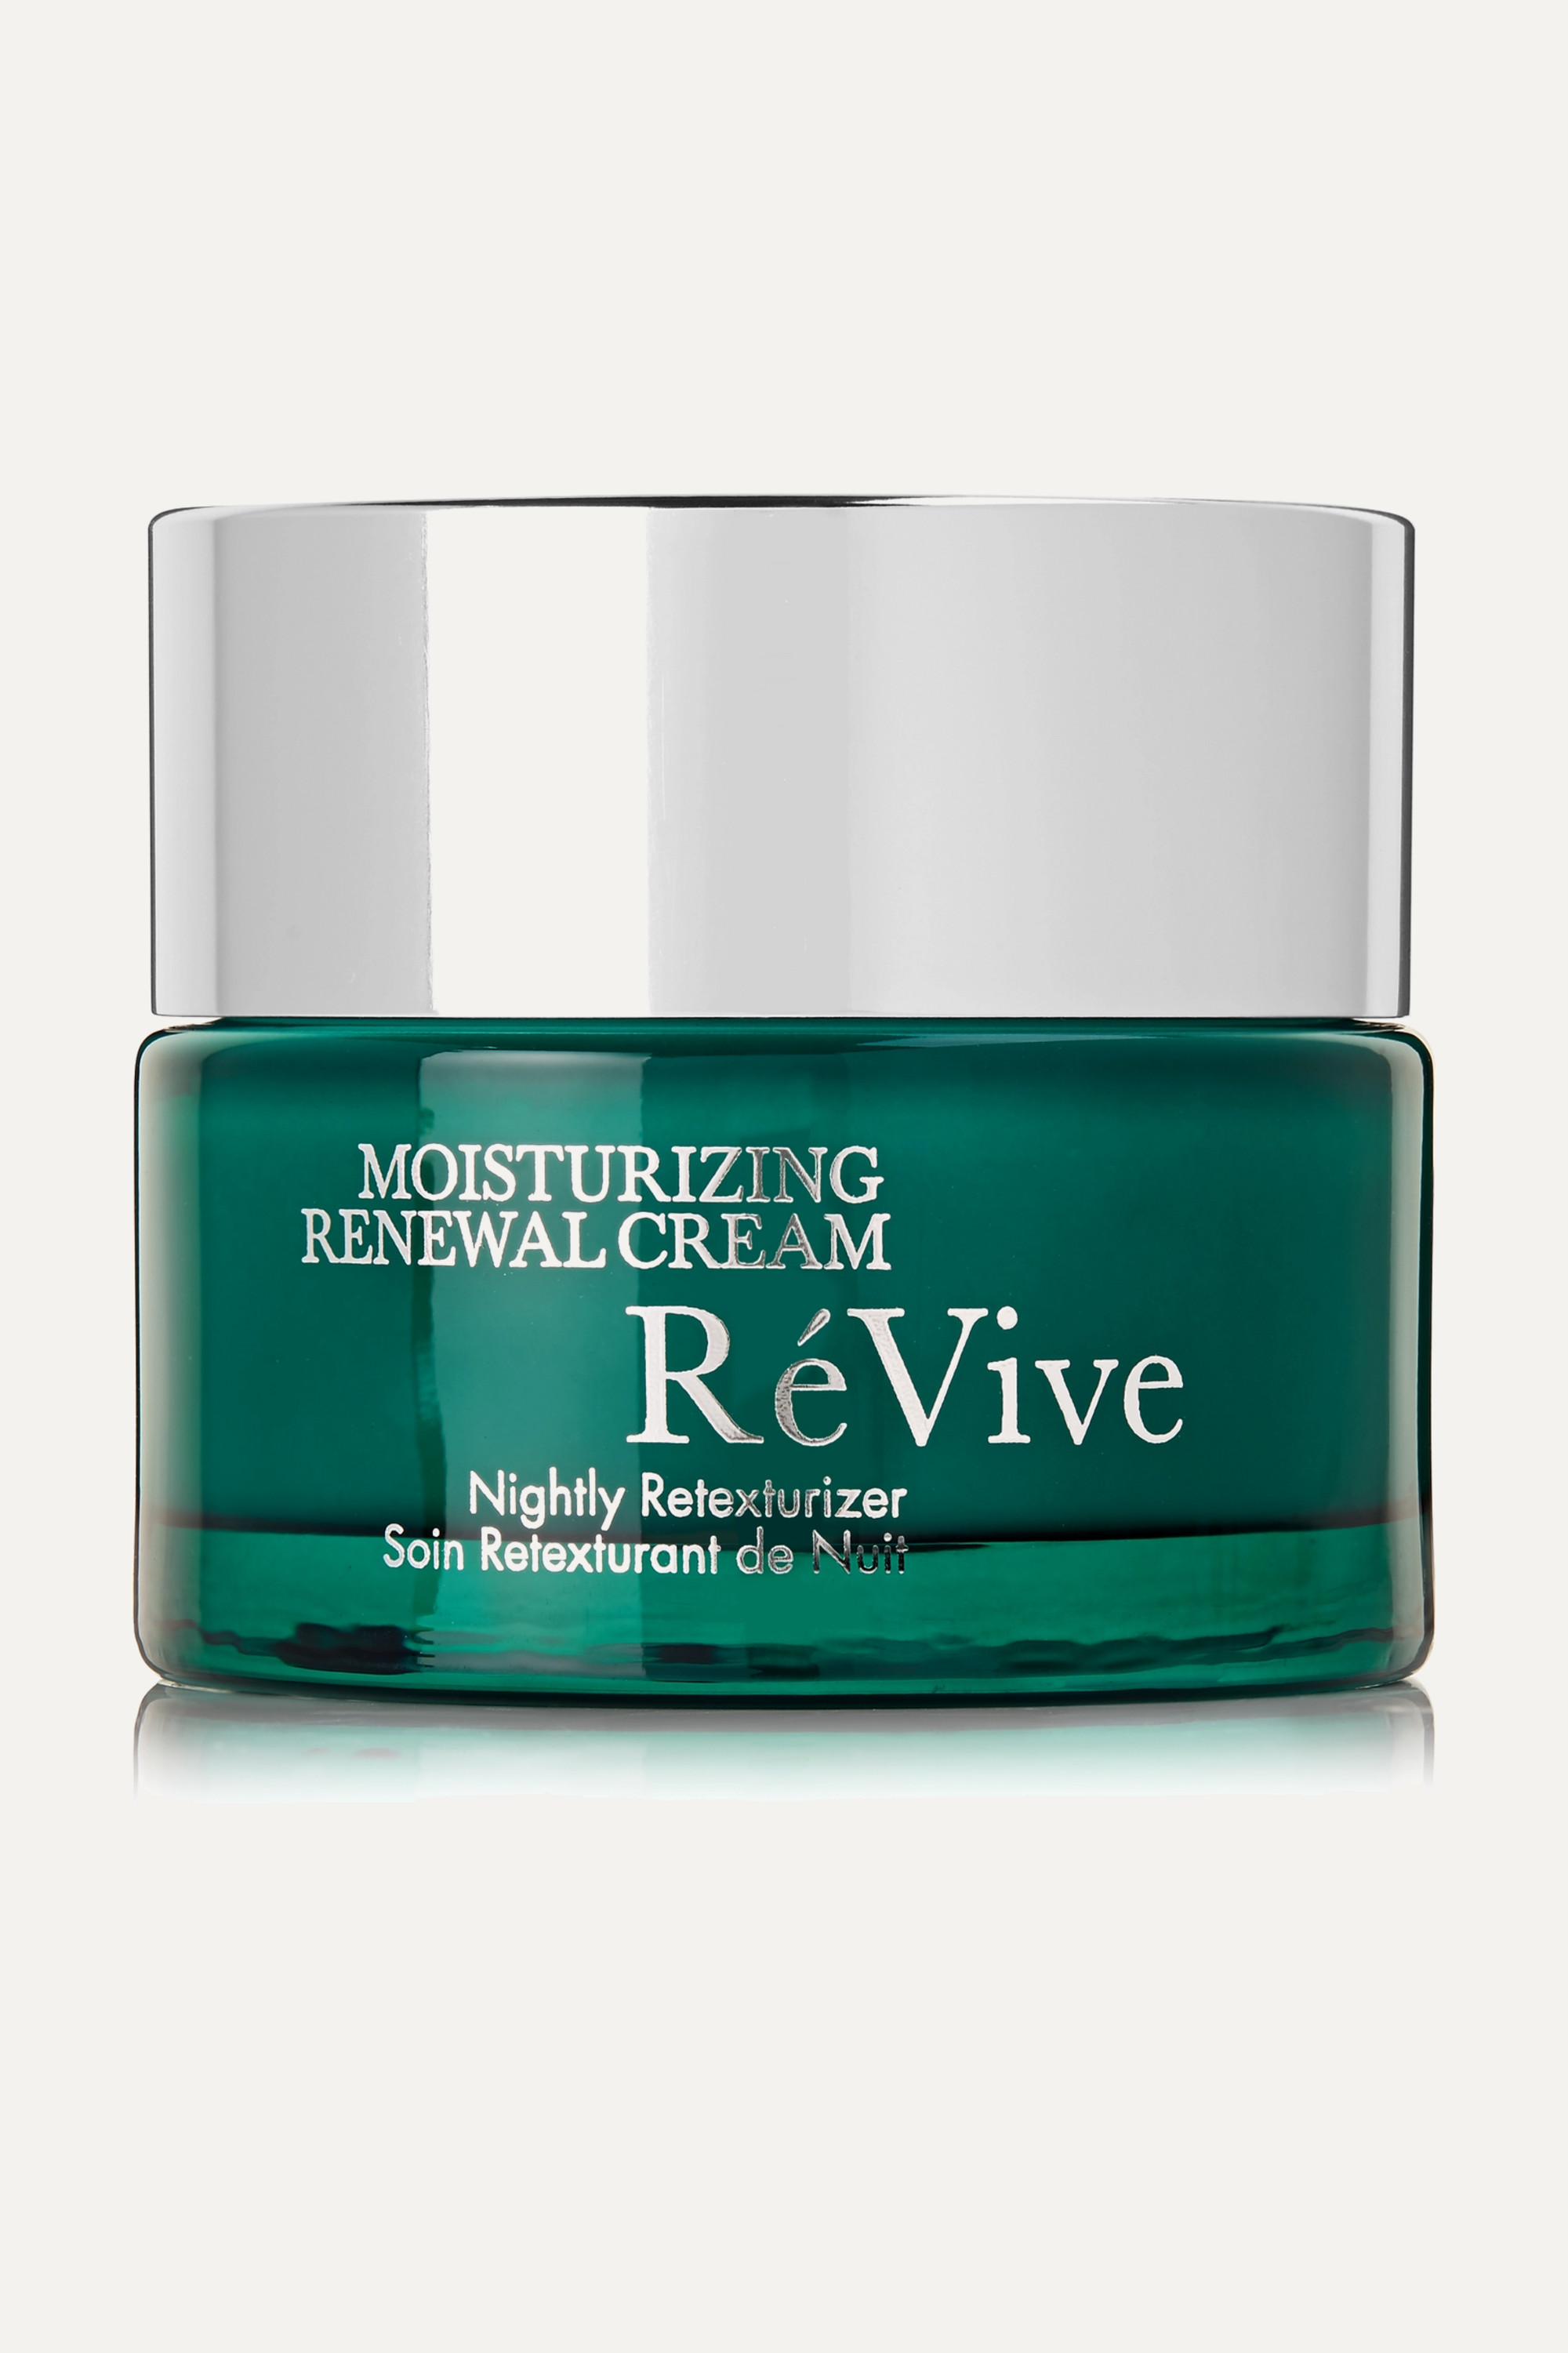 RéVive Moisturizing Renewal Cream, 50ml